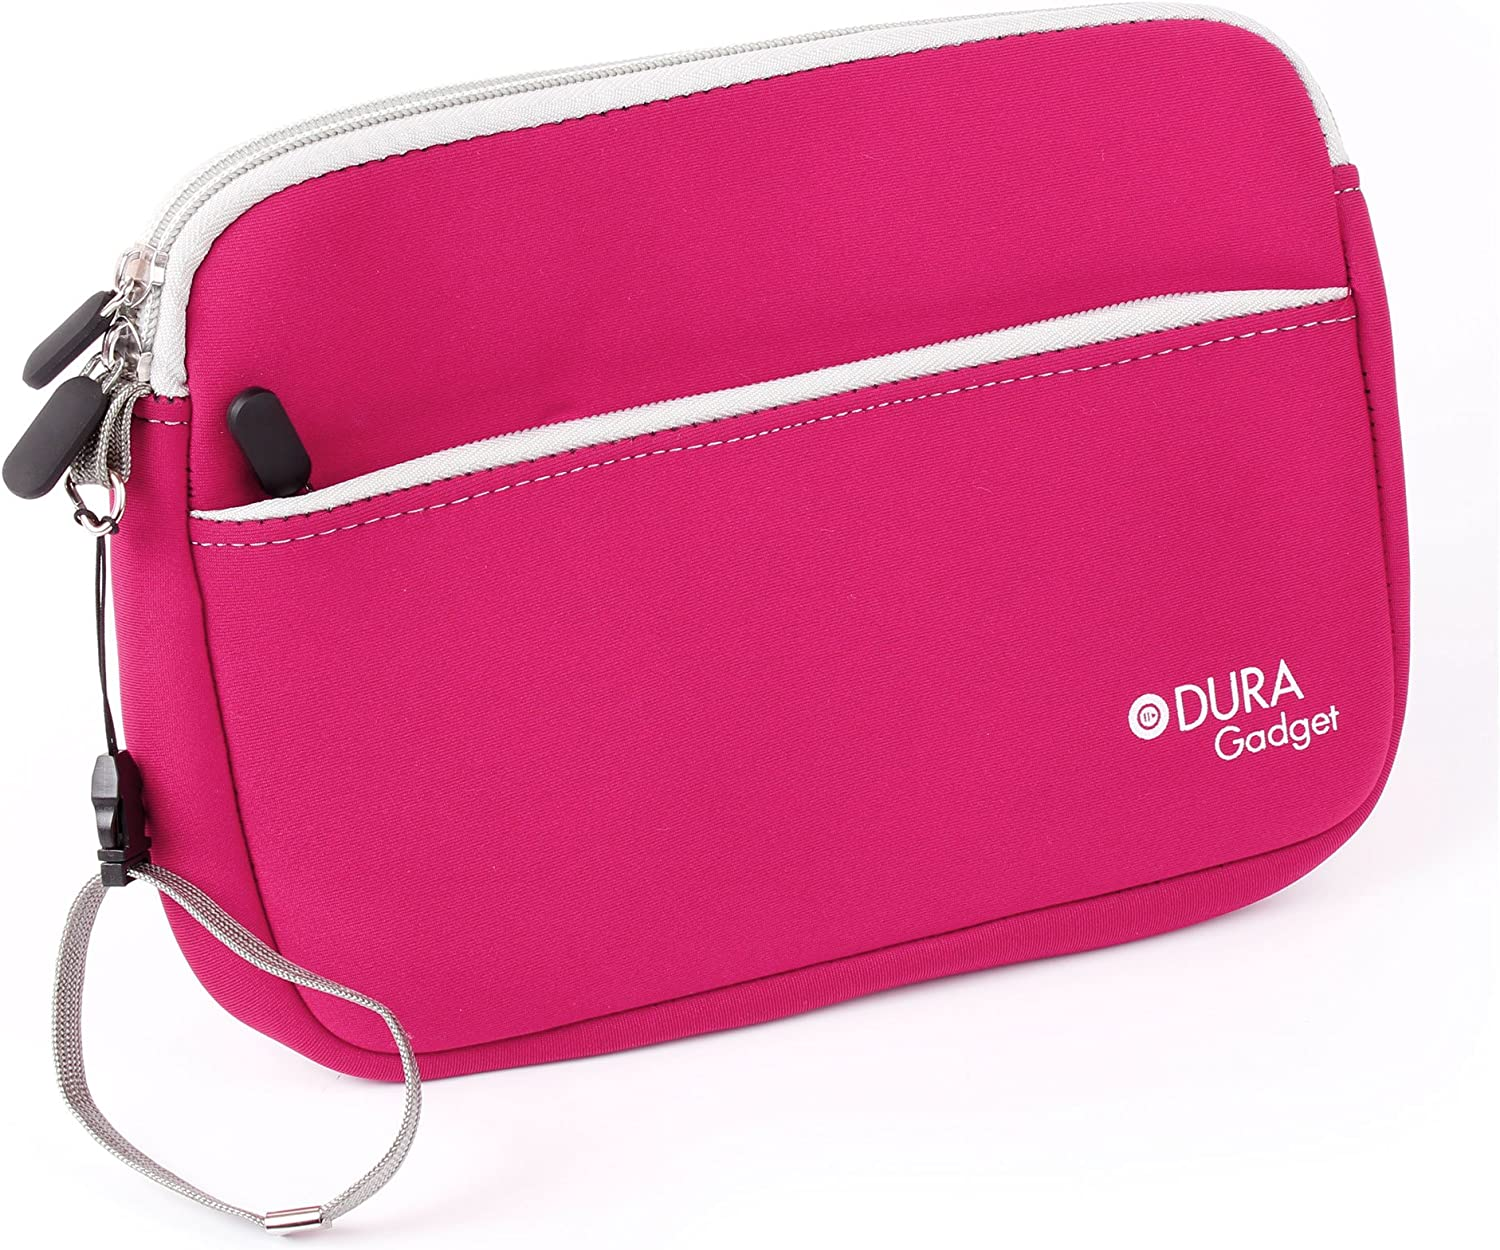 "DURAGADGET Hot Pink 10"" Neoprene Water-Resistant Case for New Acer Iconia Tab 10 A3-A30 / Iconia Tab 10 A3-A20 / Iconia Tab 10 - with Zipped Front Storage Pocket & Removable Wrist Strap"